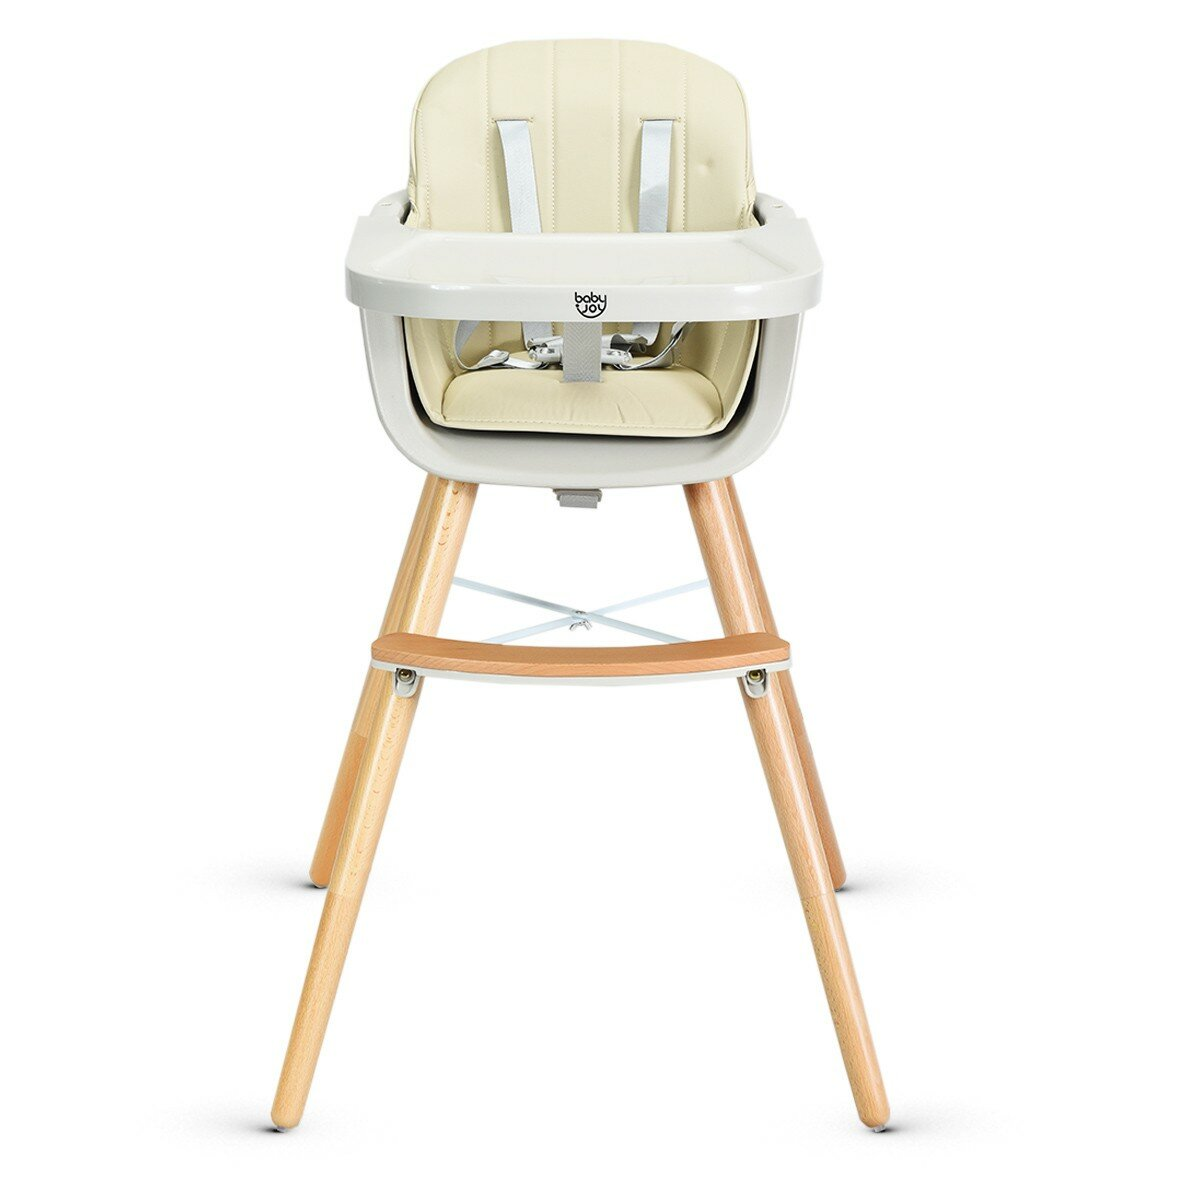 3 in 1 Baby High Chair Infant Child Feeding Seat Highchair Food Tray Safety Belt